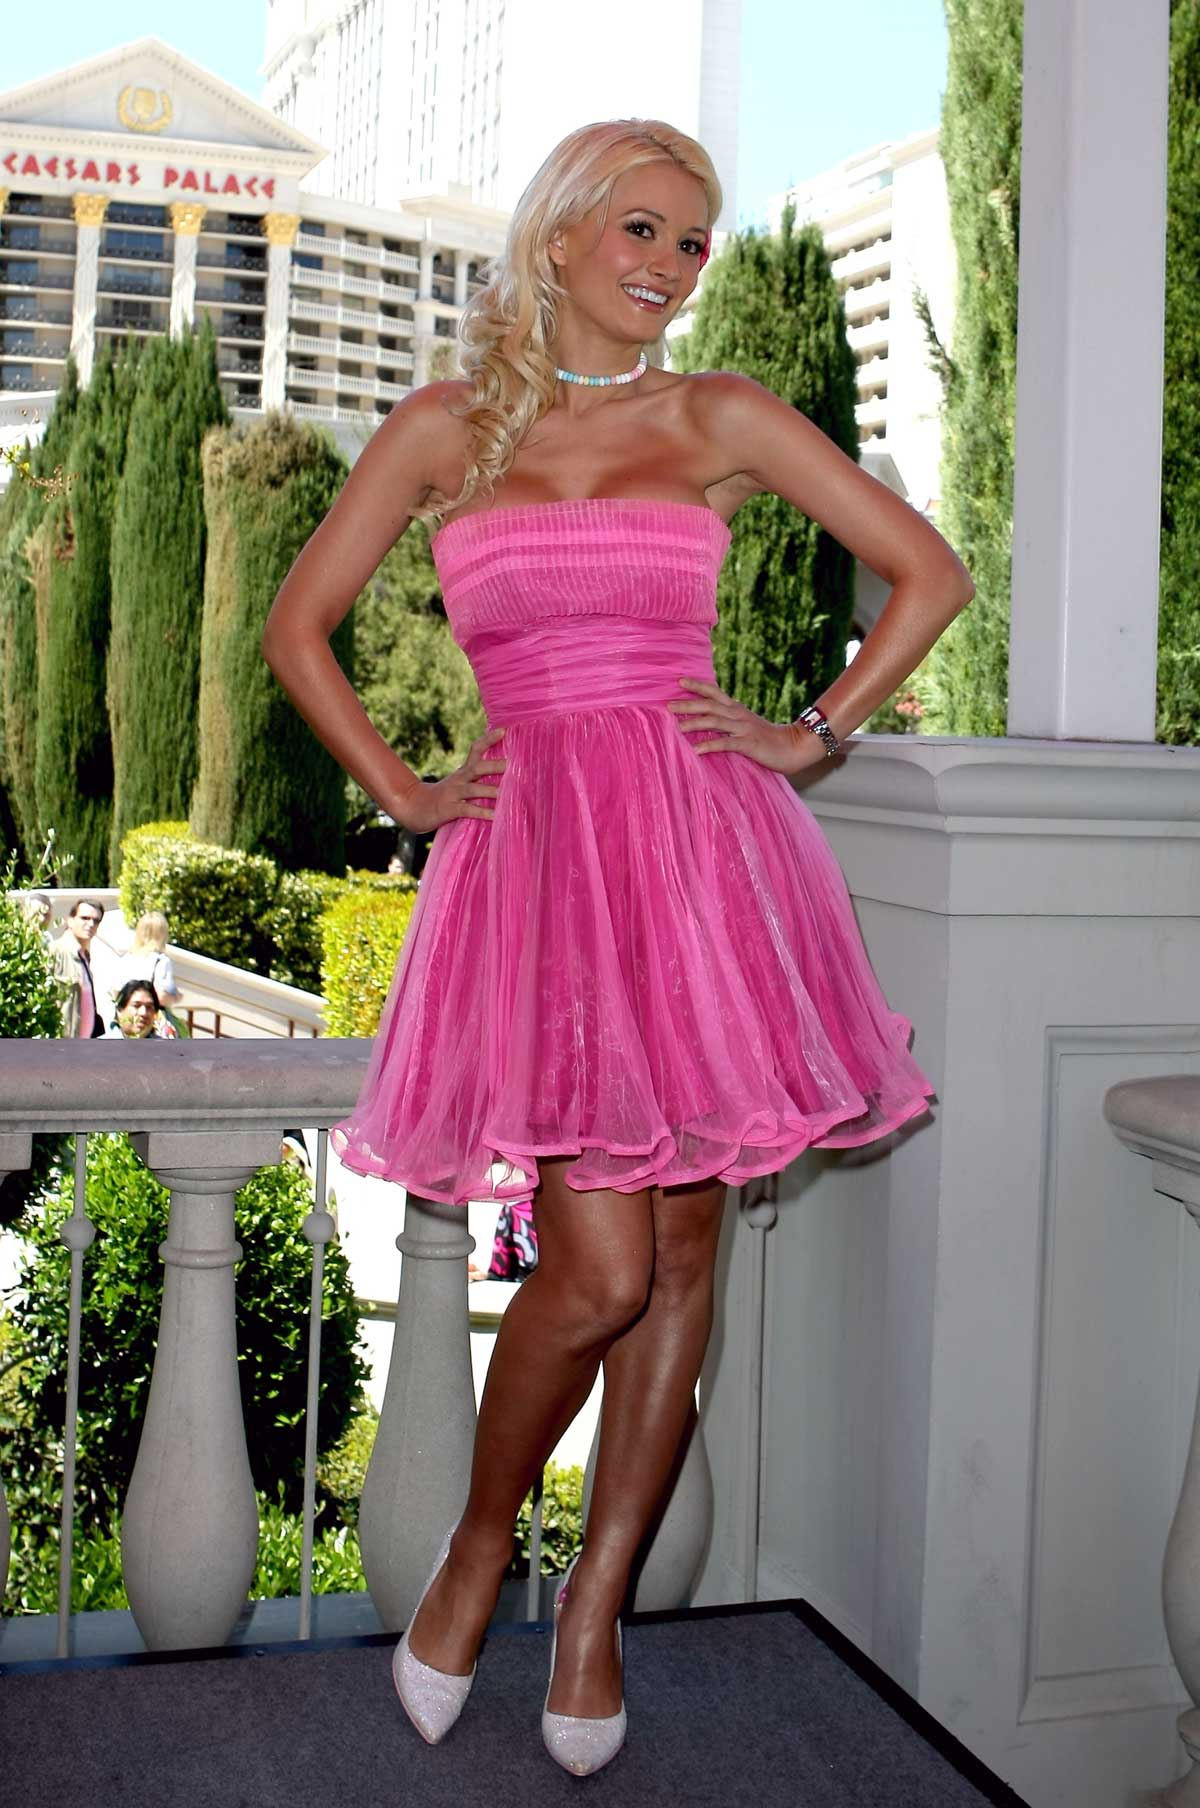 holly madison high quality naked pics